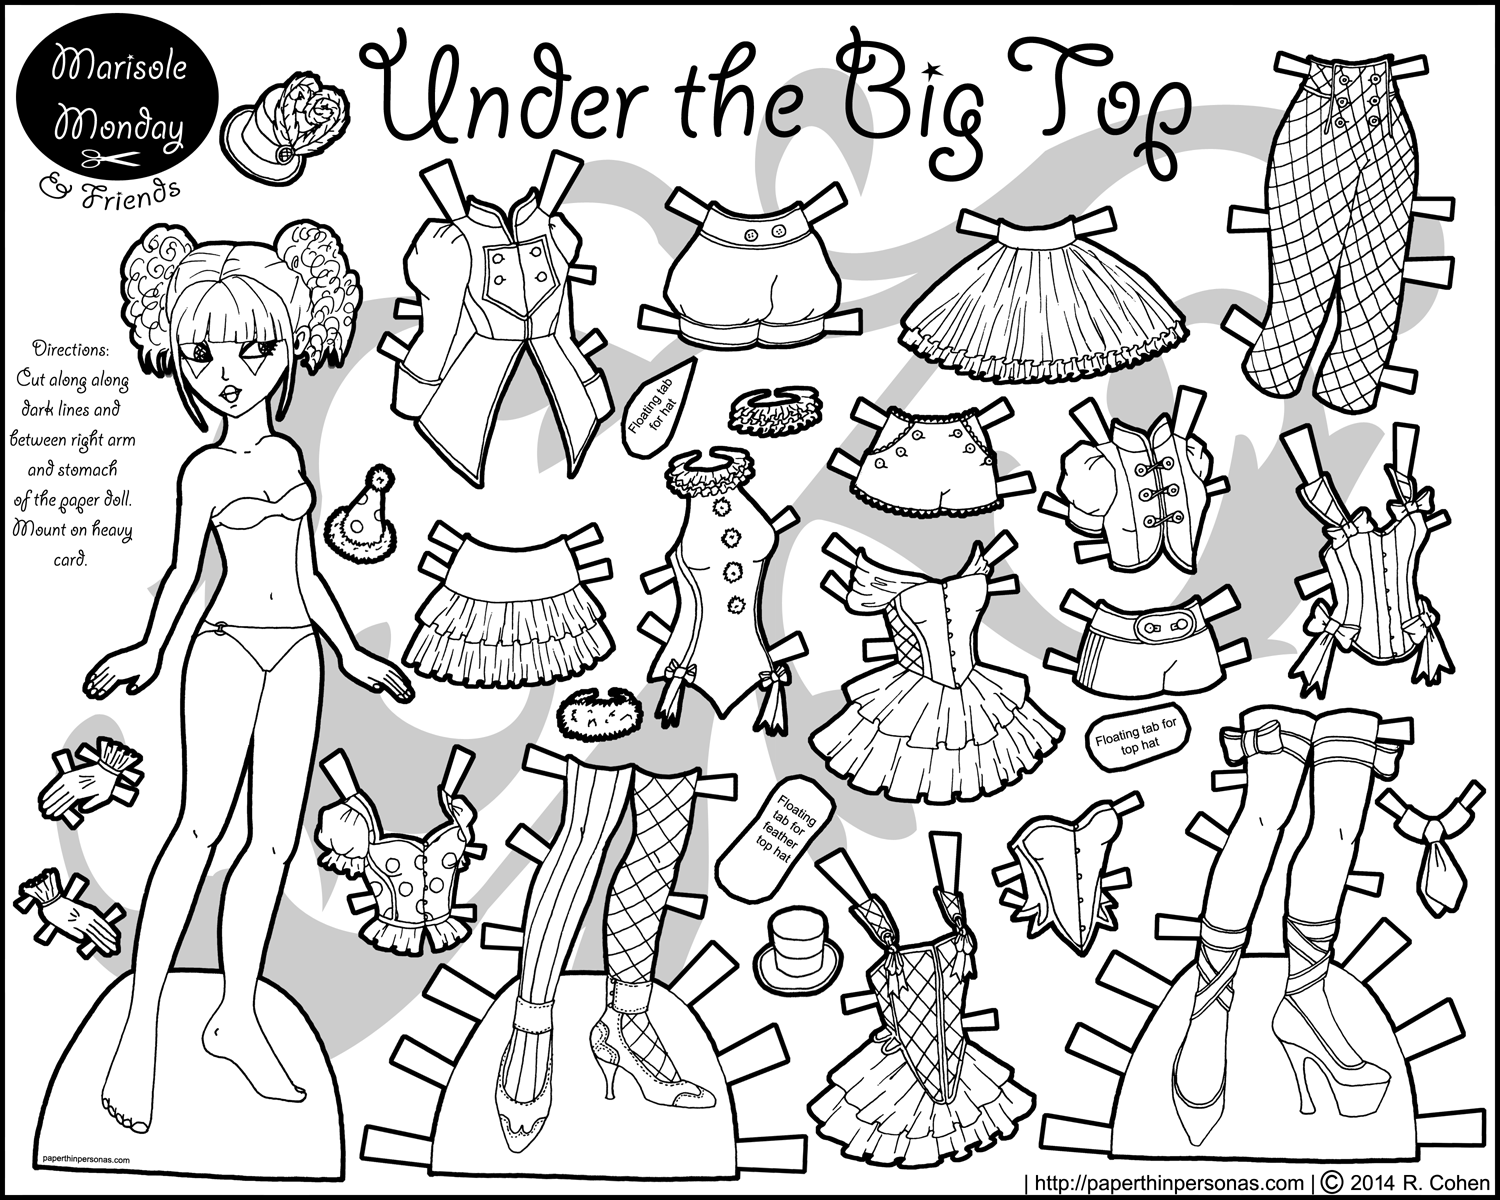 Circus Paper Doll for Coloring • Paper Thin Personas